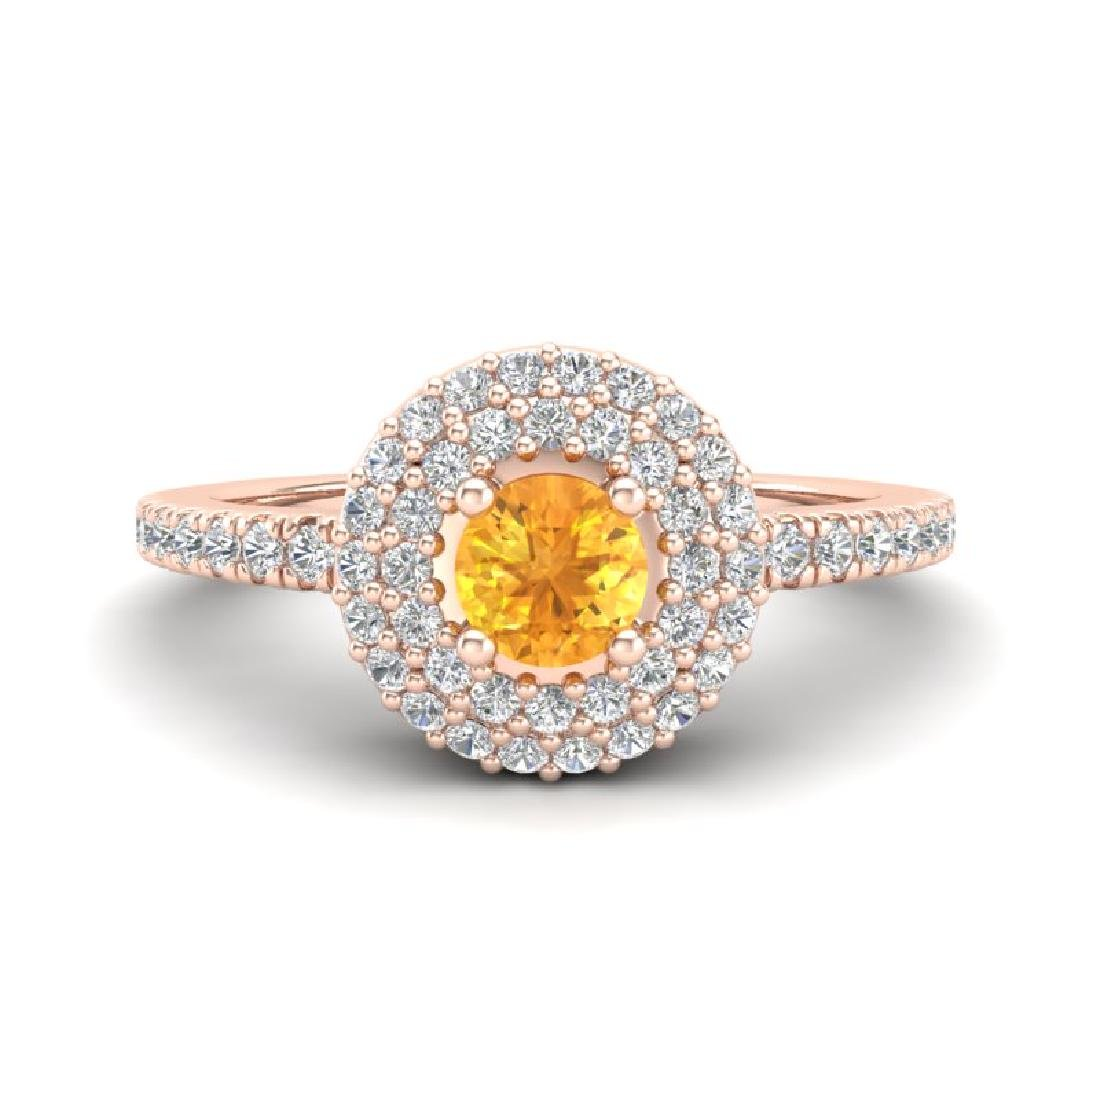 0.70 CTW Citrine & Micro Pave VS/SI Diamond Ring 14K